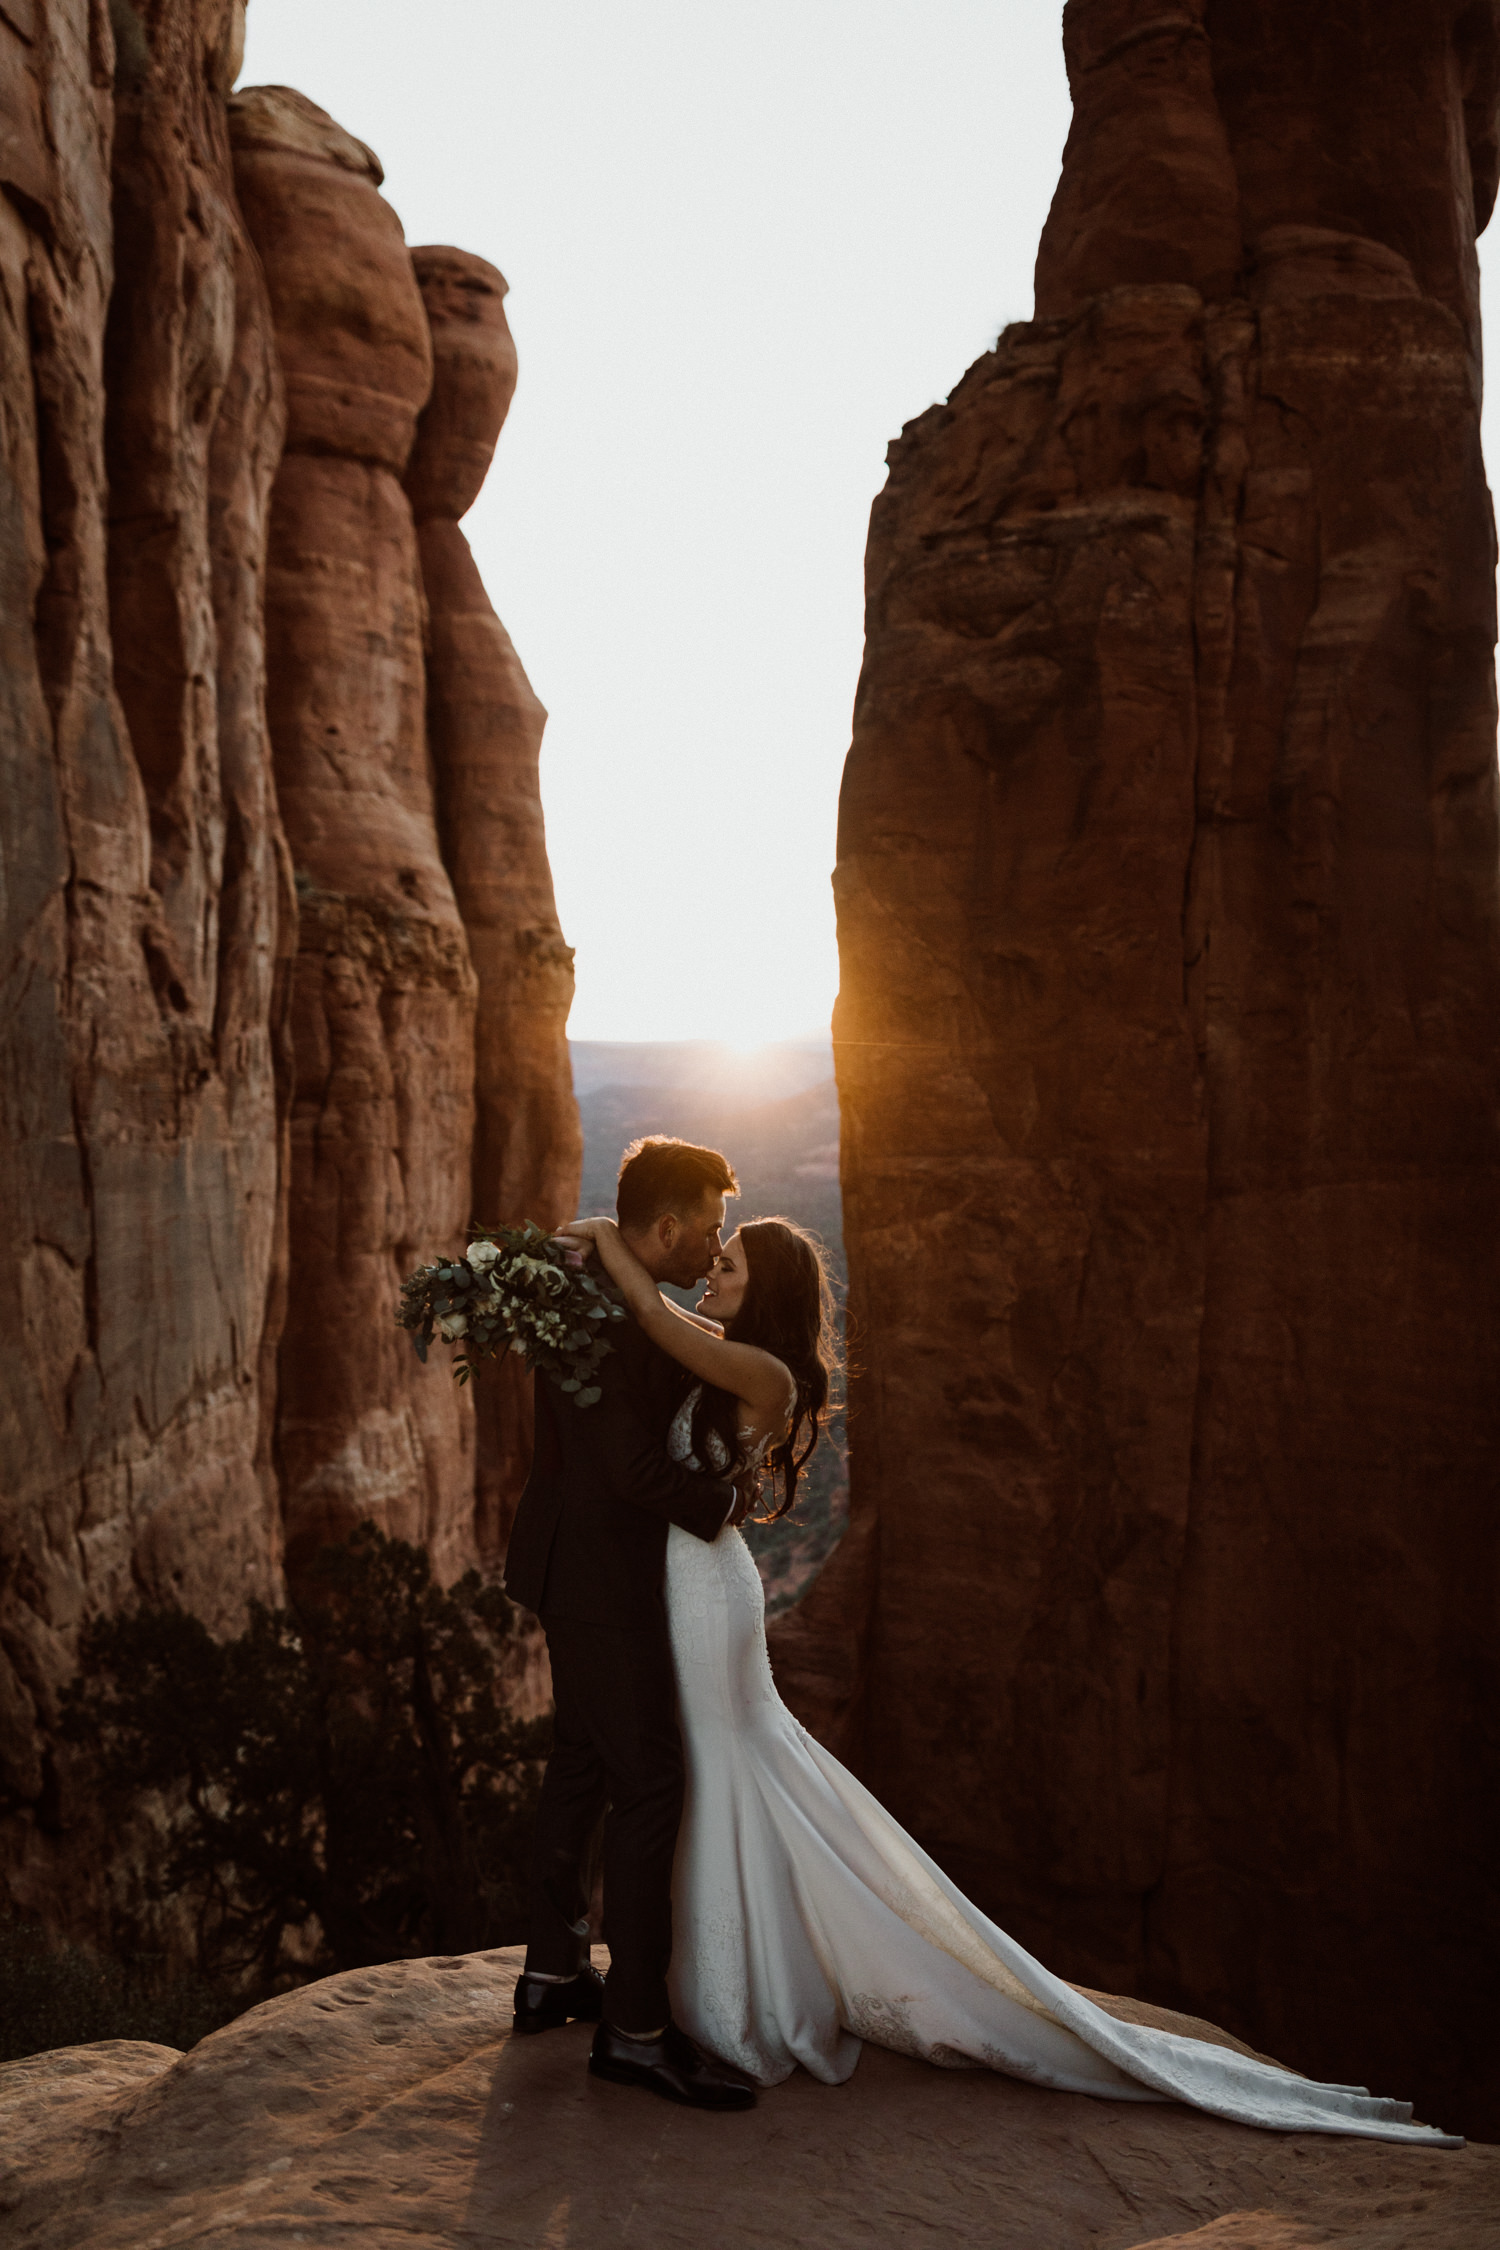 64_intimate-sedona-arizona-wedding-89.jpg